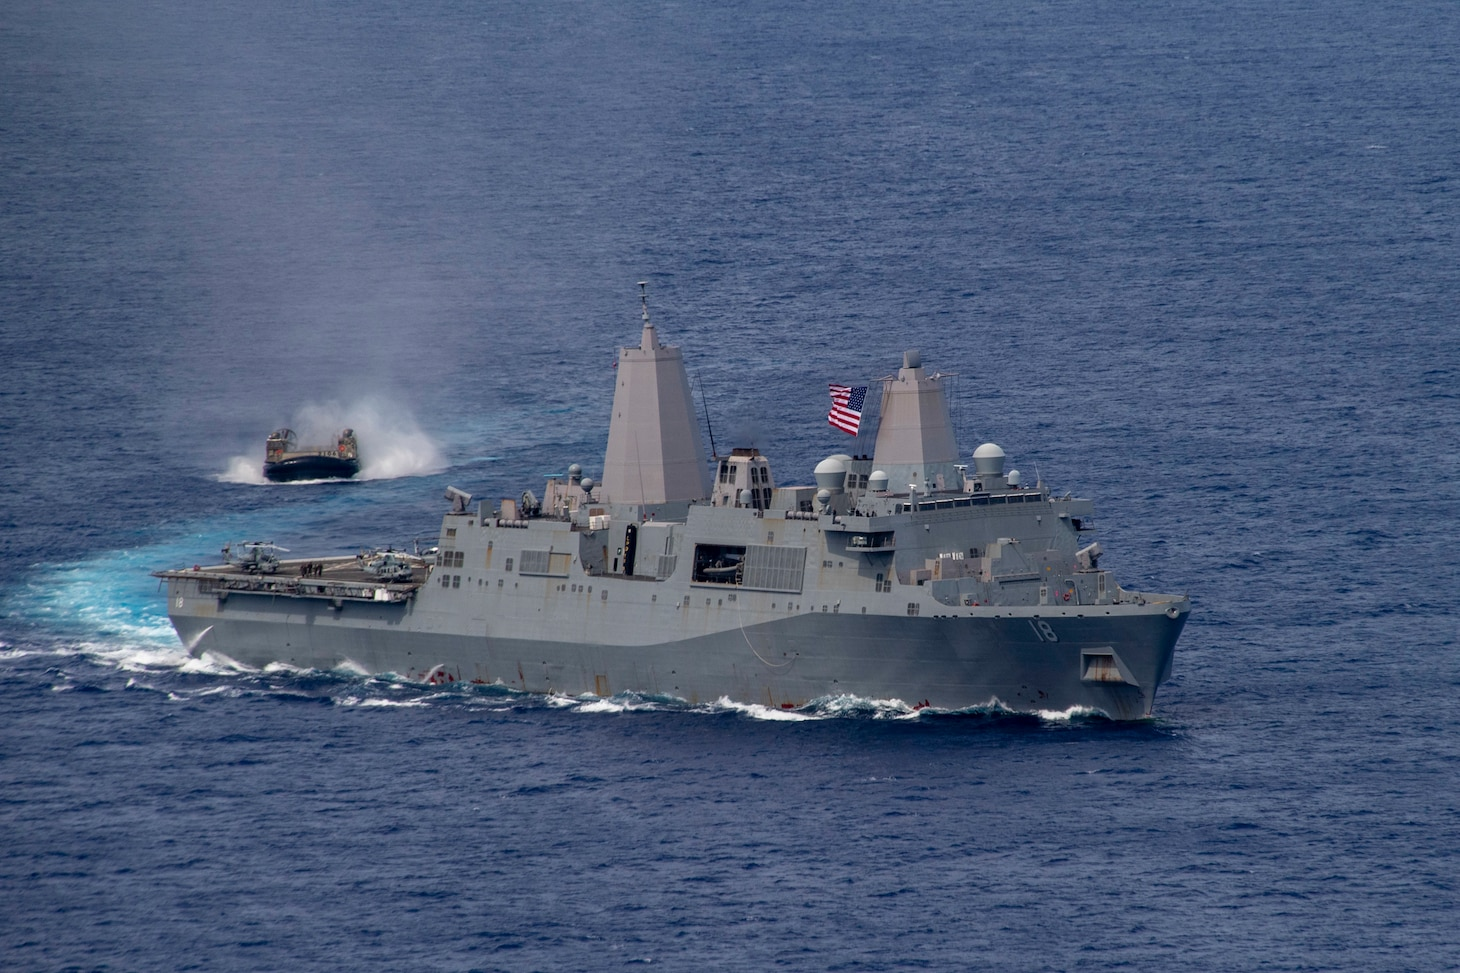 PHILIPPINE SEA (June 13, 2021) Amphibious transport dock USS New Orleans (LPD 19), right, sails alongside a Japan Maritime Self Defense Force landing craft, air cushion. The America Amphibious Ready Group, along with the 31st Marine Expeditionary Unit, is operating in the U.S. 7th Fleet area of operations to enhance interoperability with allies and partners and serve as a ready response force to defend peace and stability in the Indo-Pacific region.